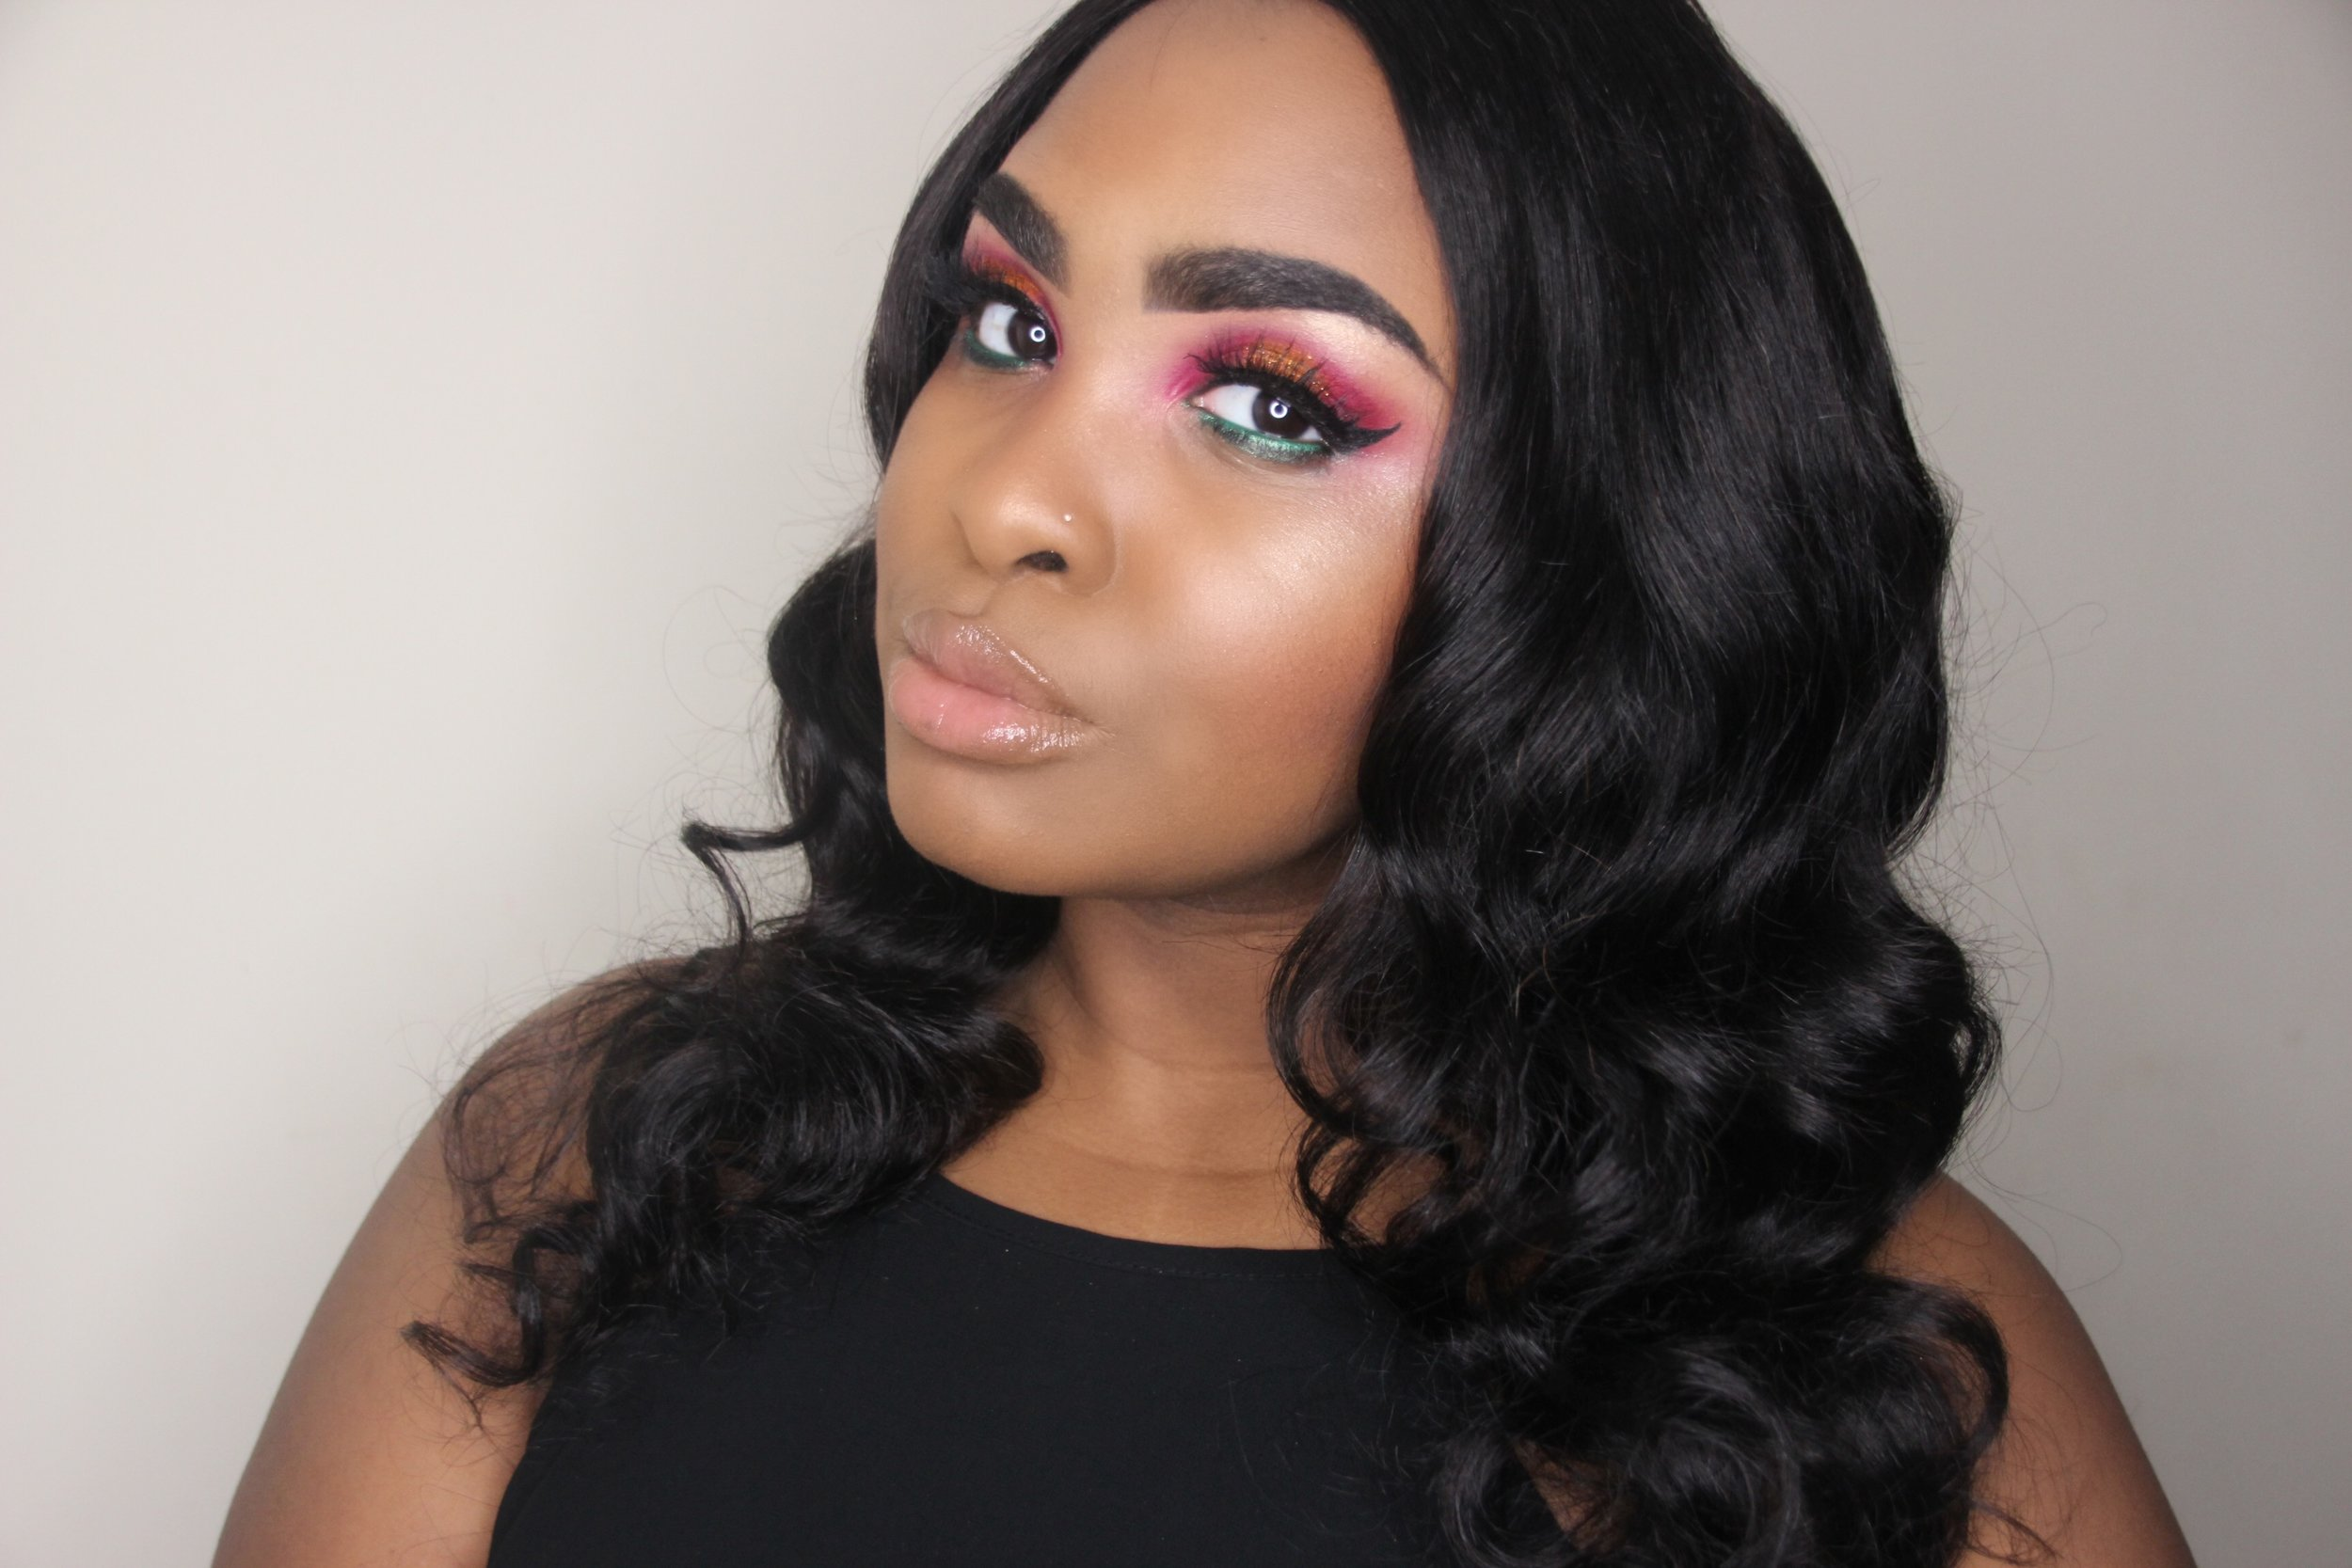 Sadresha Sade - is a Beauty Blogger and Makeup Artist originally from South Carolina making her mark in the D(M)V.